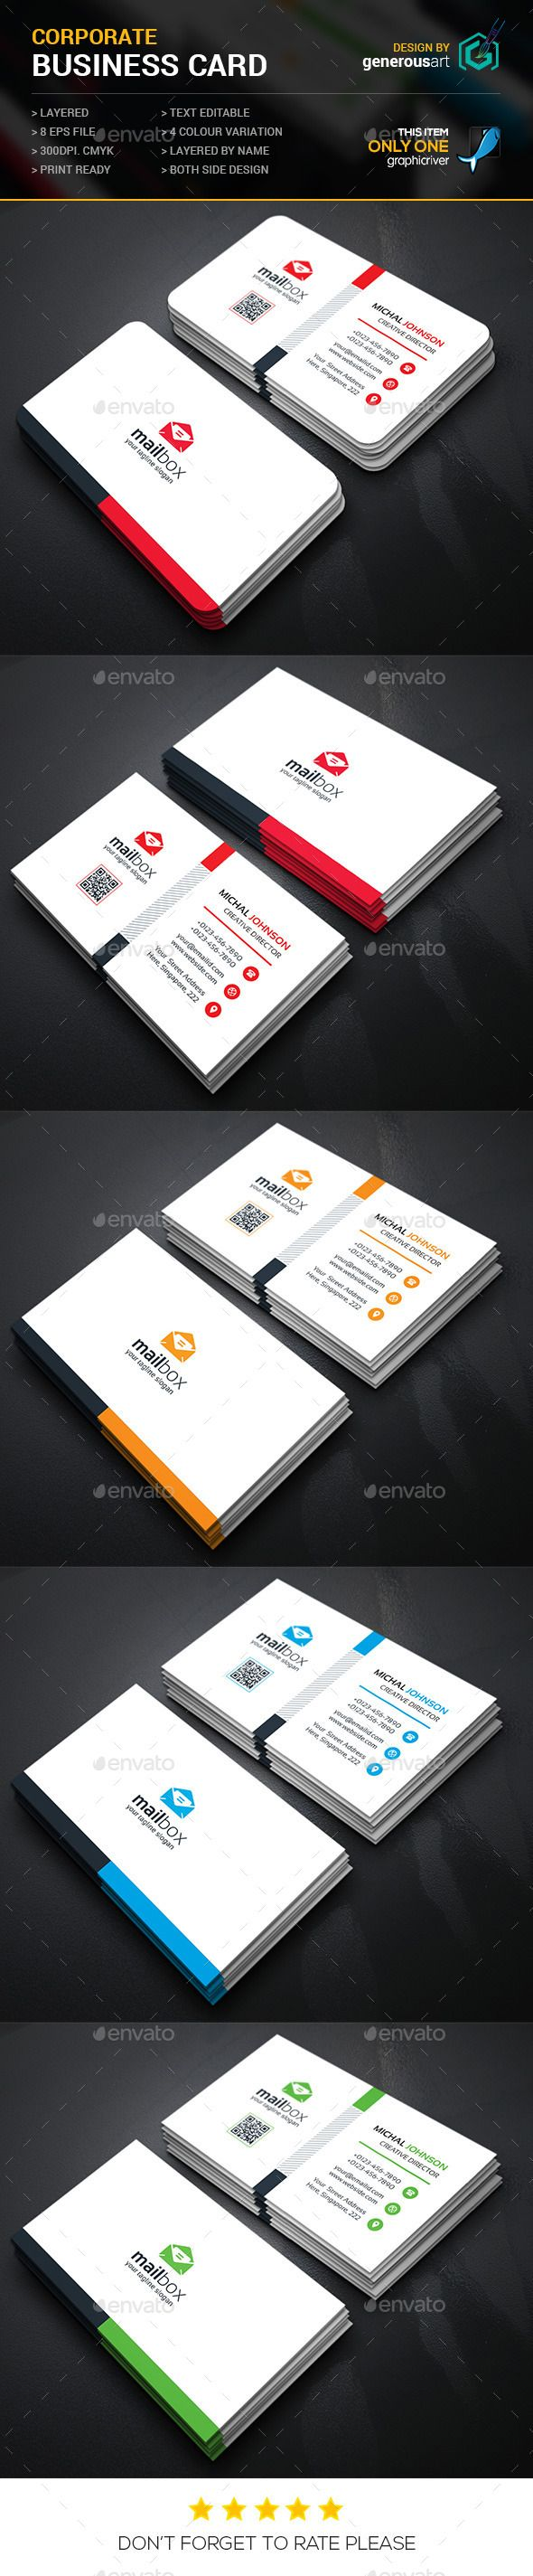 Mail Box Corporate Business Cards - Corporate Business Card Template Vector EPS. Download here: http://graphicriver.net/item/mail-box-corporate-business-cards/11895822?s_rank=1776&ref=yinkira